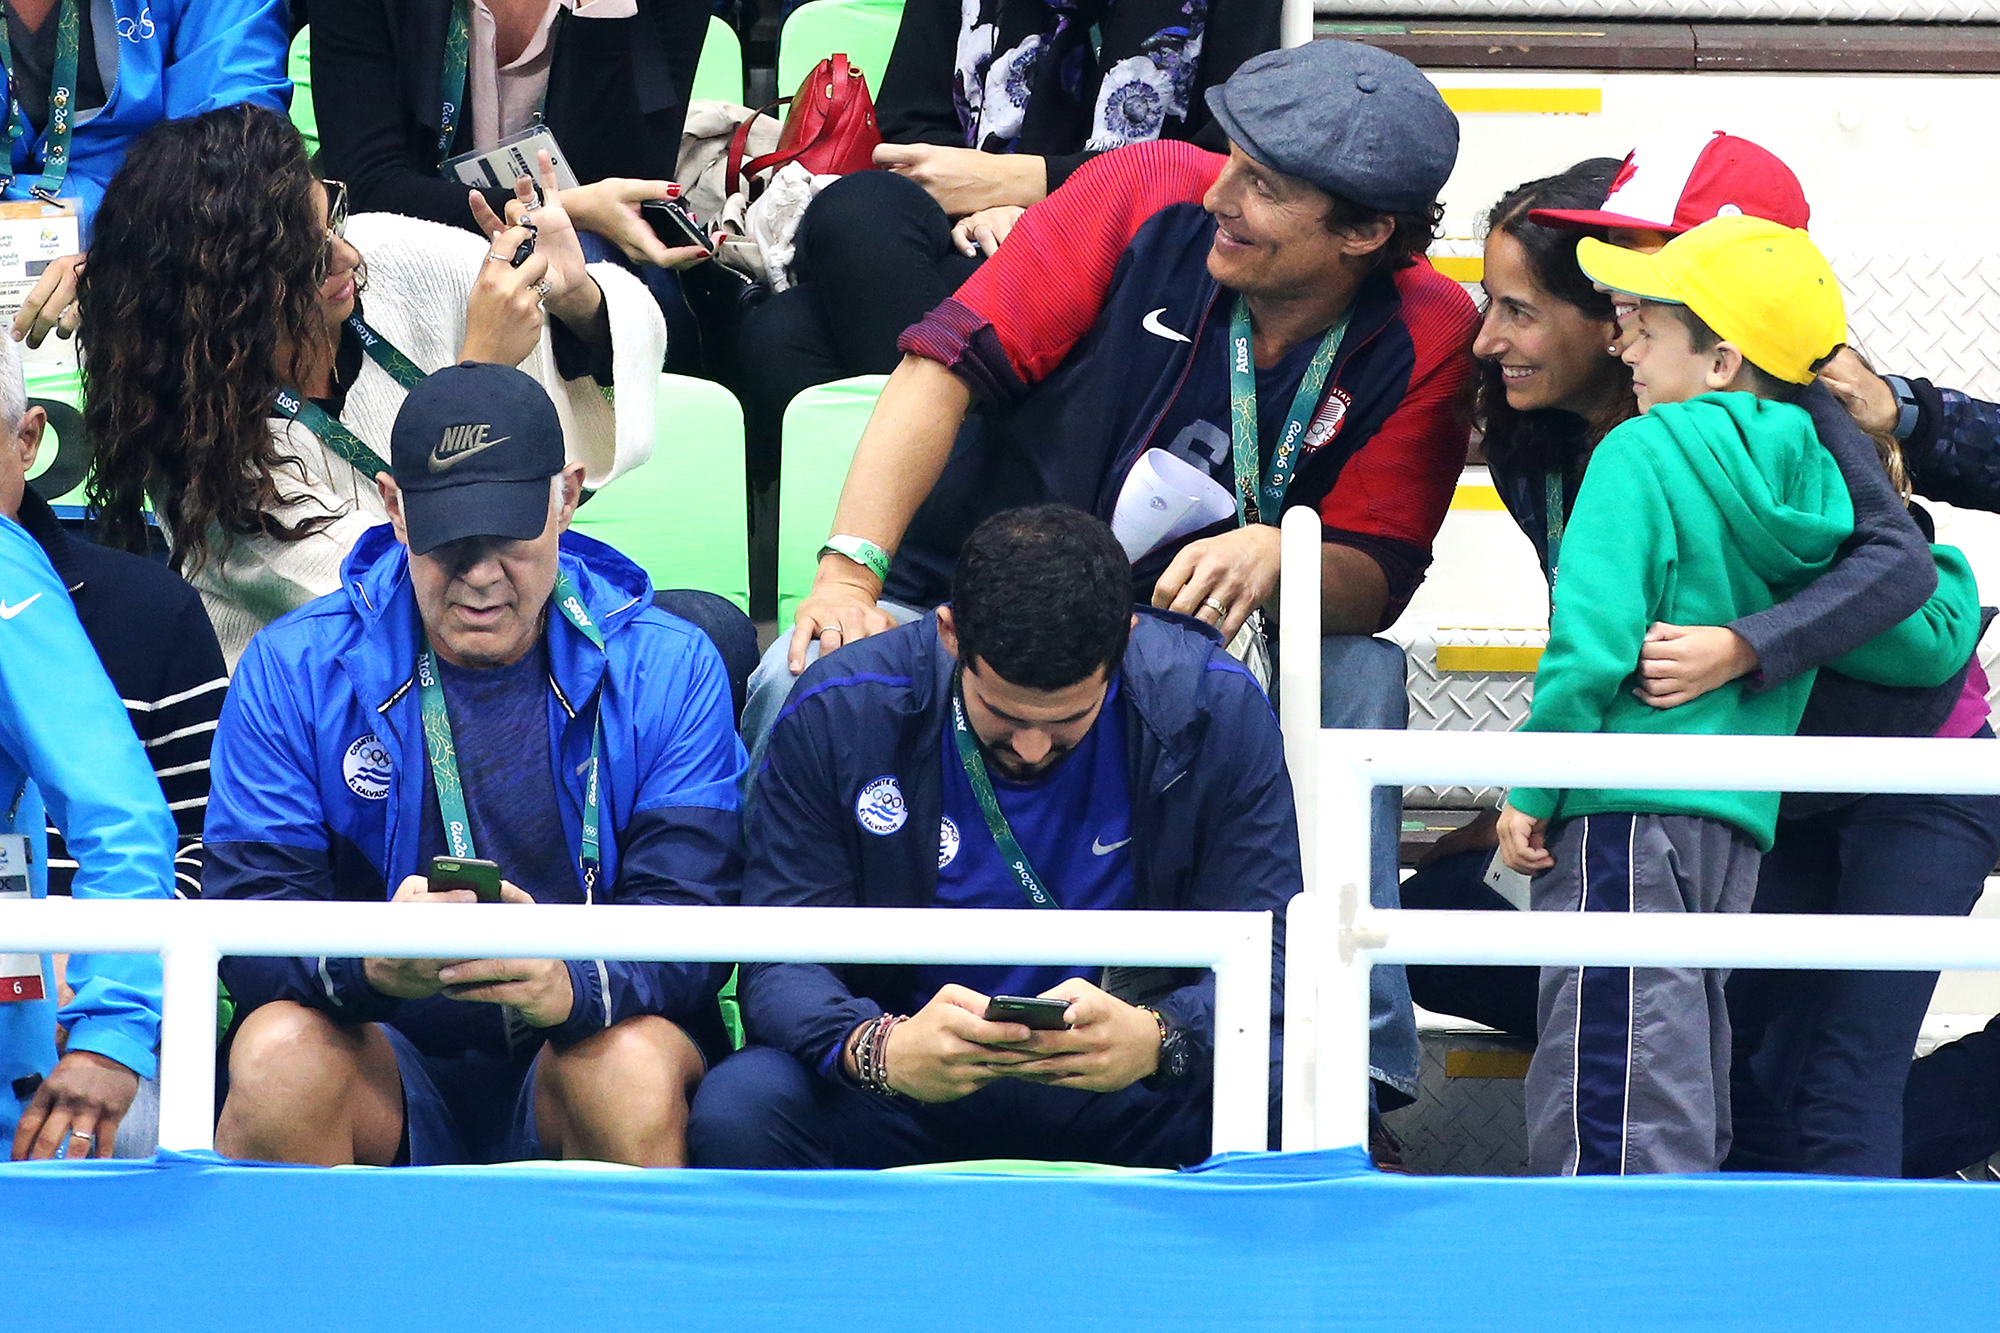 Camila Alves takes a picture of Matthew McConaughey with fans during the swimming finals on day 5 of the Rio 2016 Olympic Games, on Aug. 10, 2016 in Rio de Janeiro, Brazil.